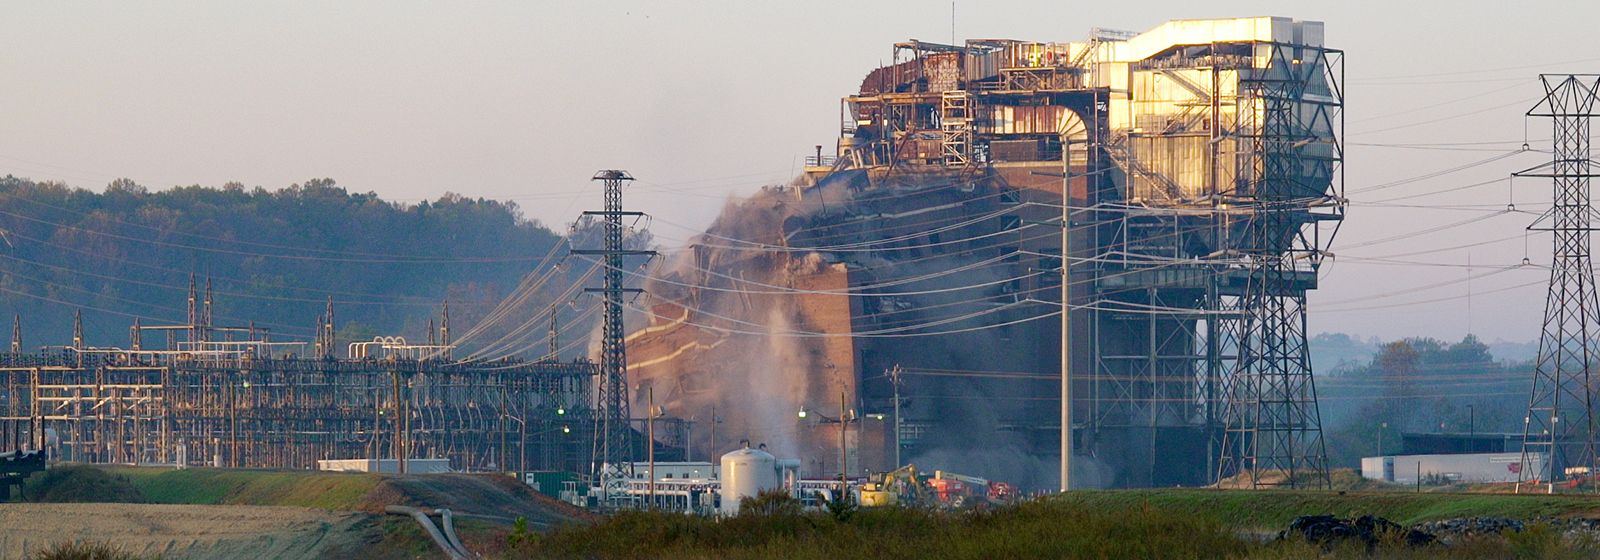 Video: Old Dan River power plant imploded